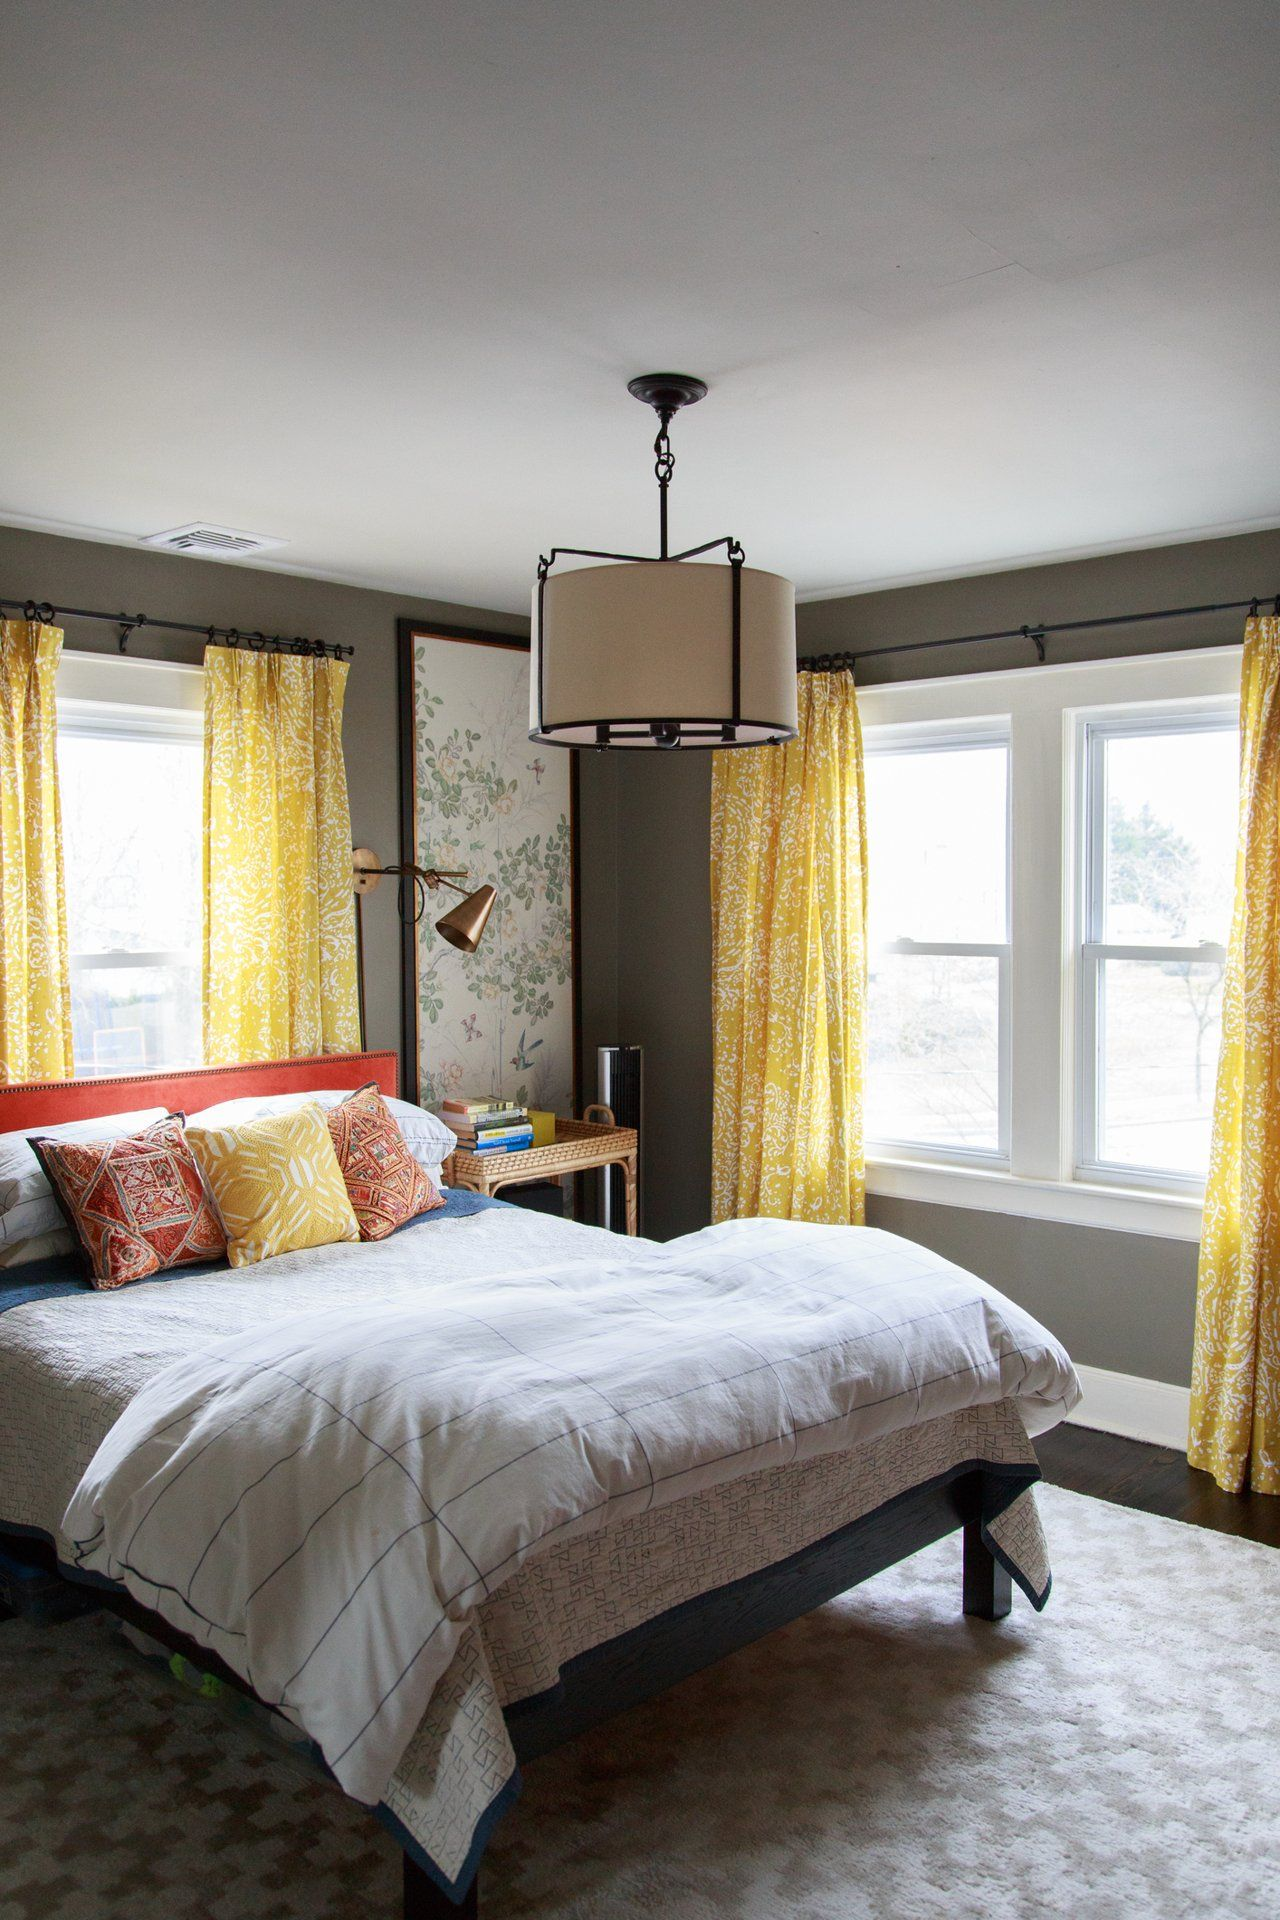 Under window decor  house tour an eclectic mix in a new jersey house  house love